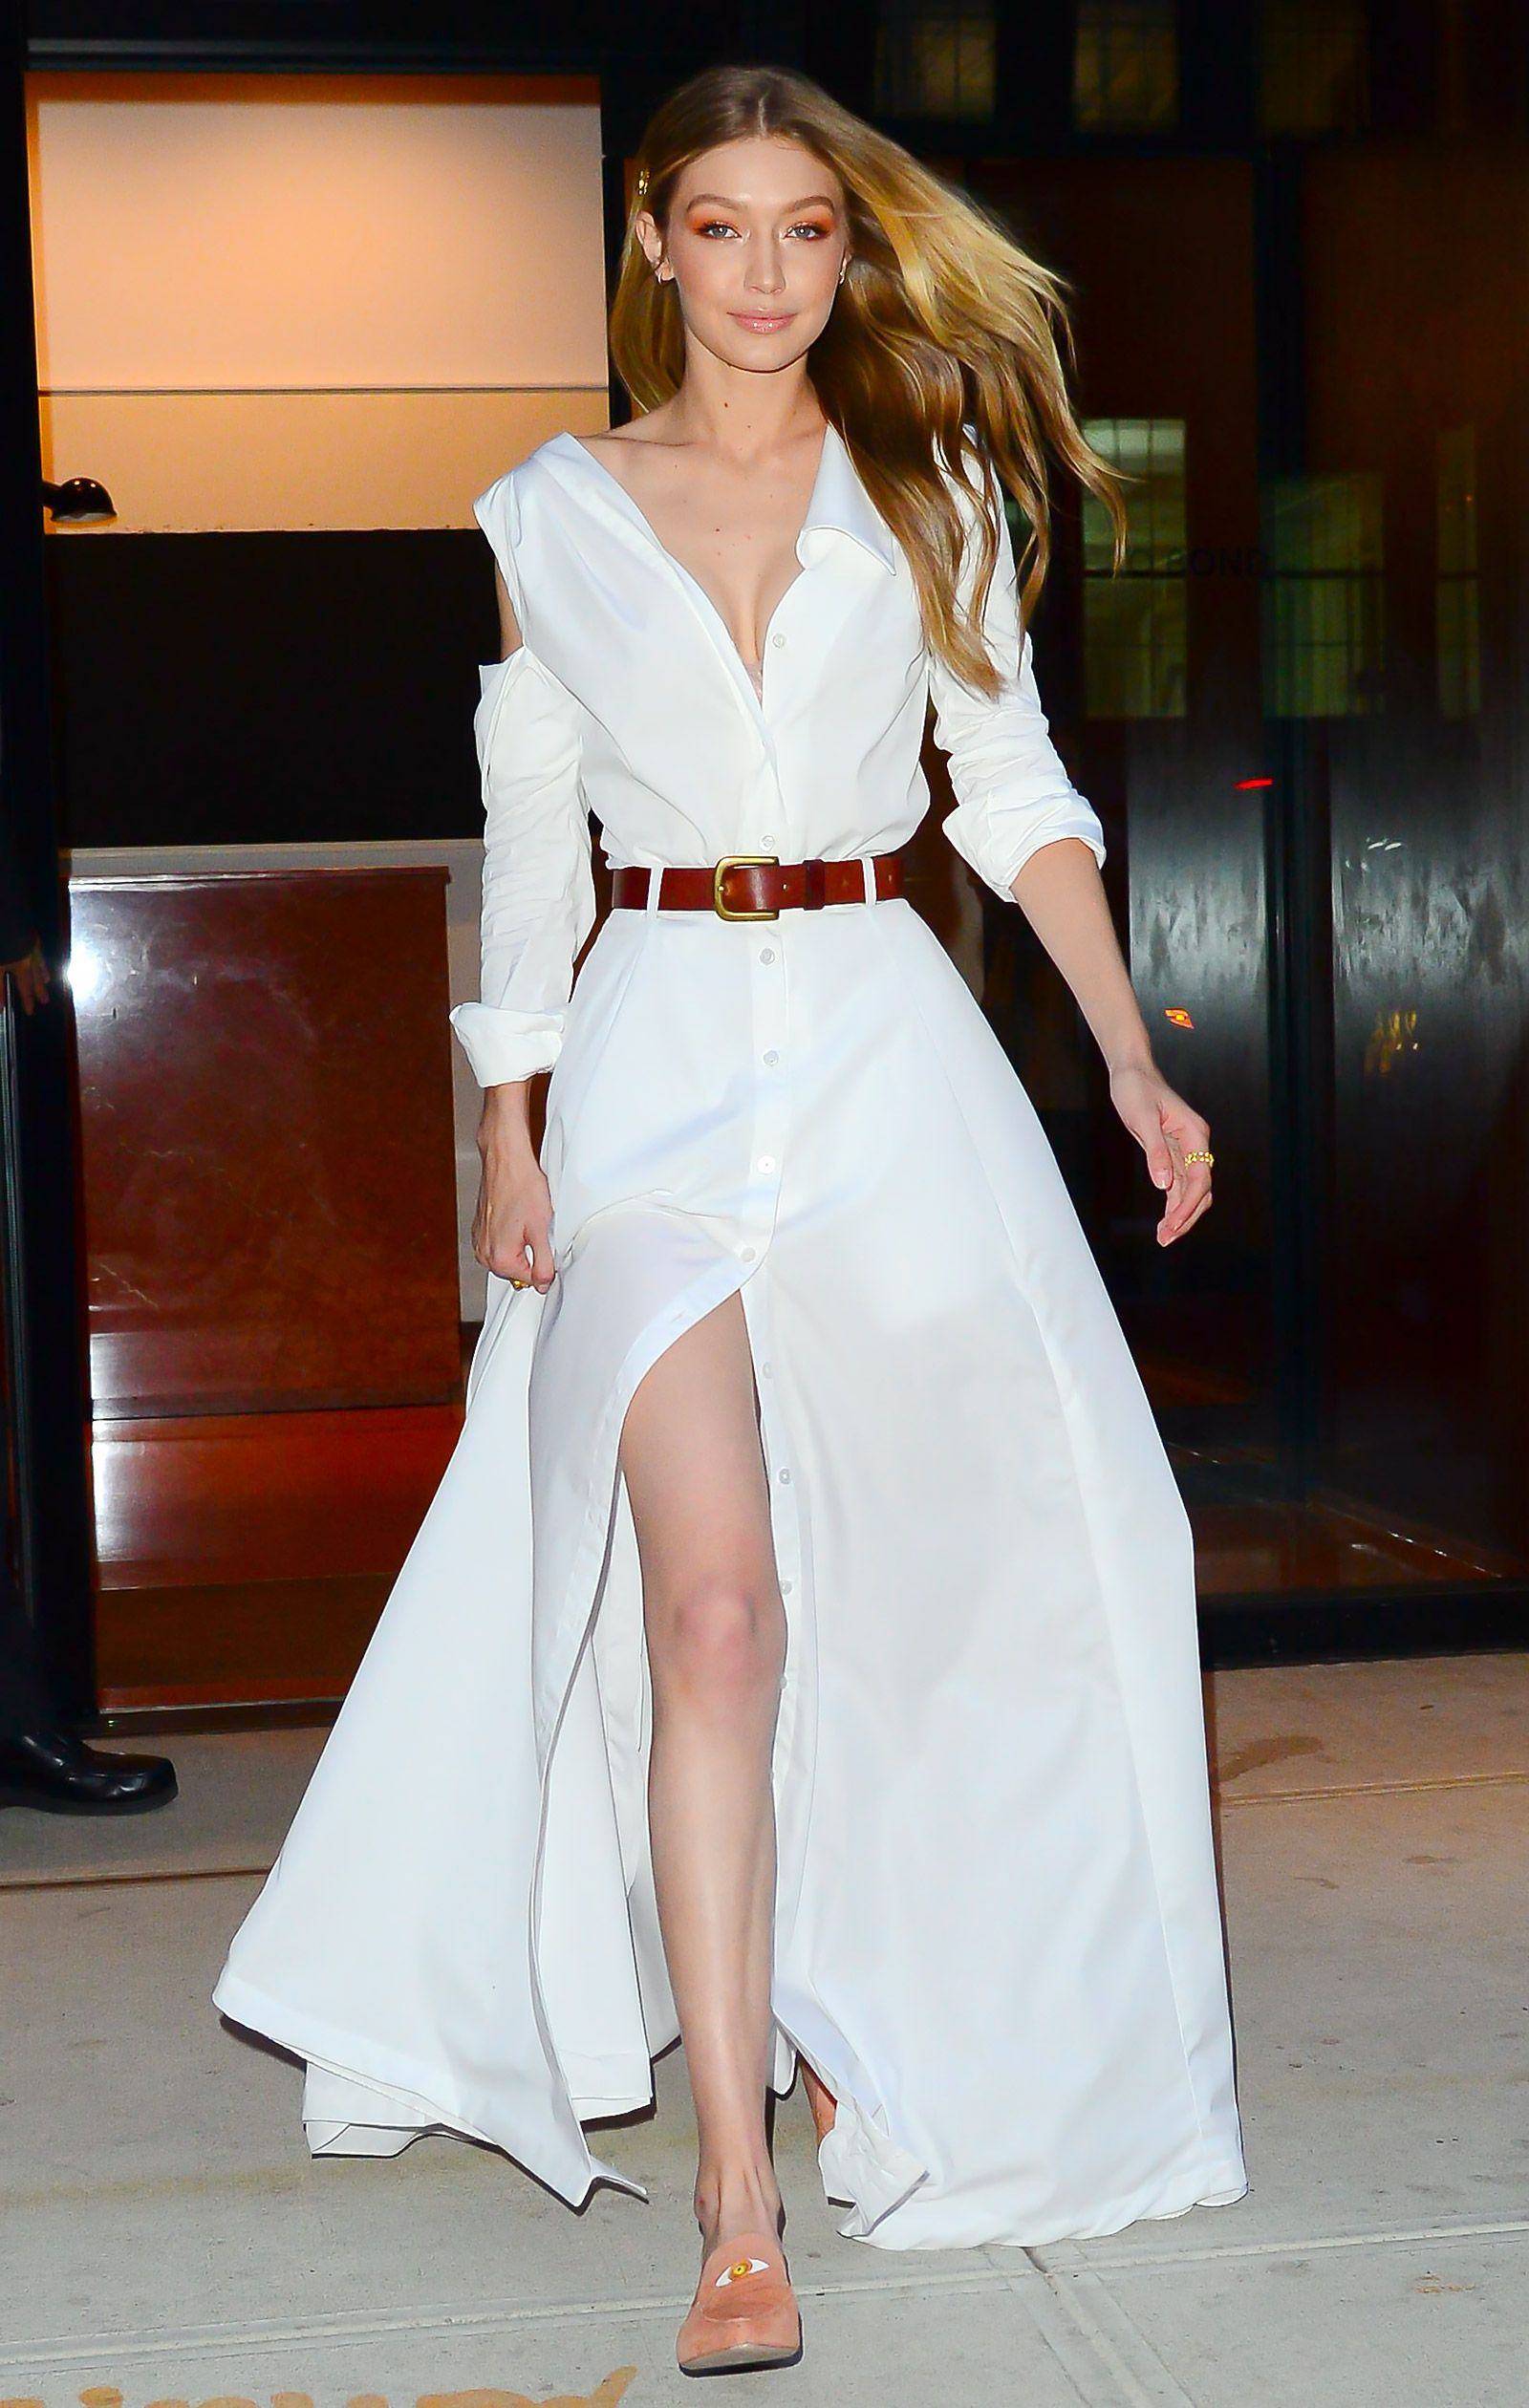 Looking Angelic! Gigi Hadid Wears Two Floaty All White Outfits Ahead of Victorias Secret Fashion Show